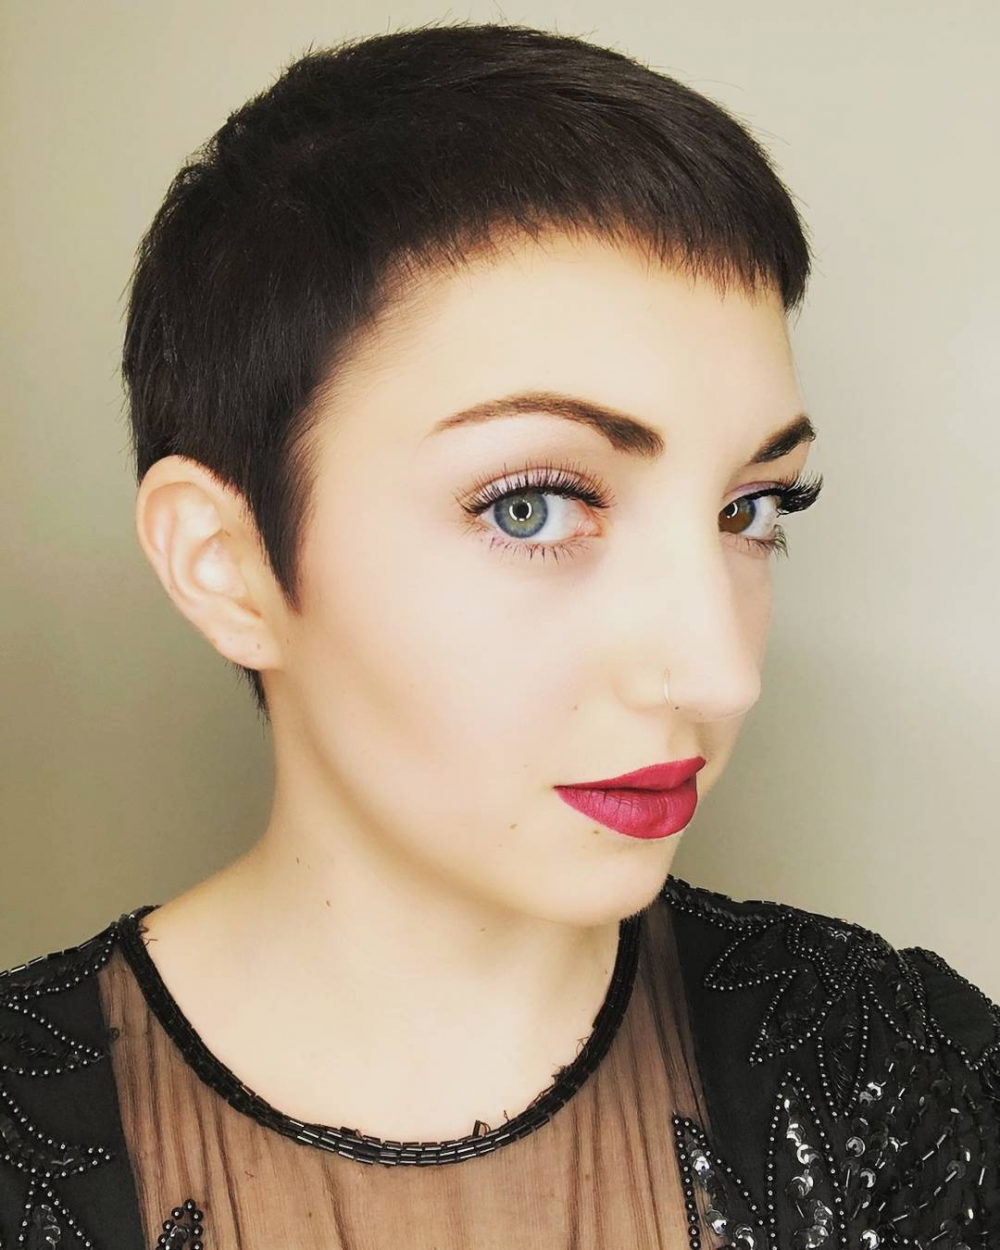 27 Very Short Haircuts You Have To See In 2018 Inside Short Female Hair Cuts (View 4 of 25)